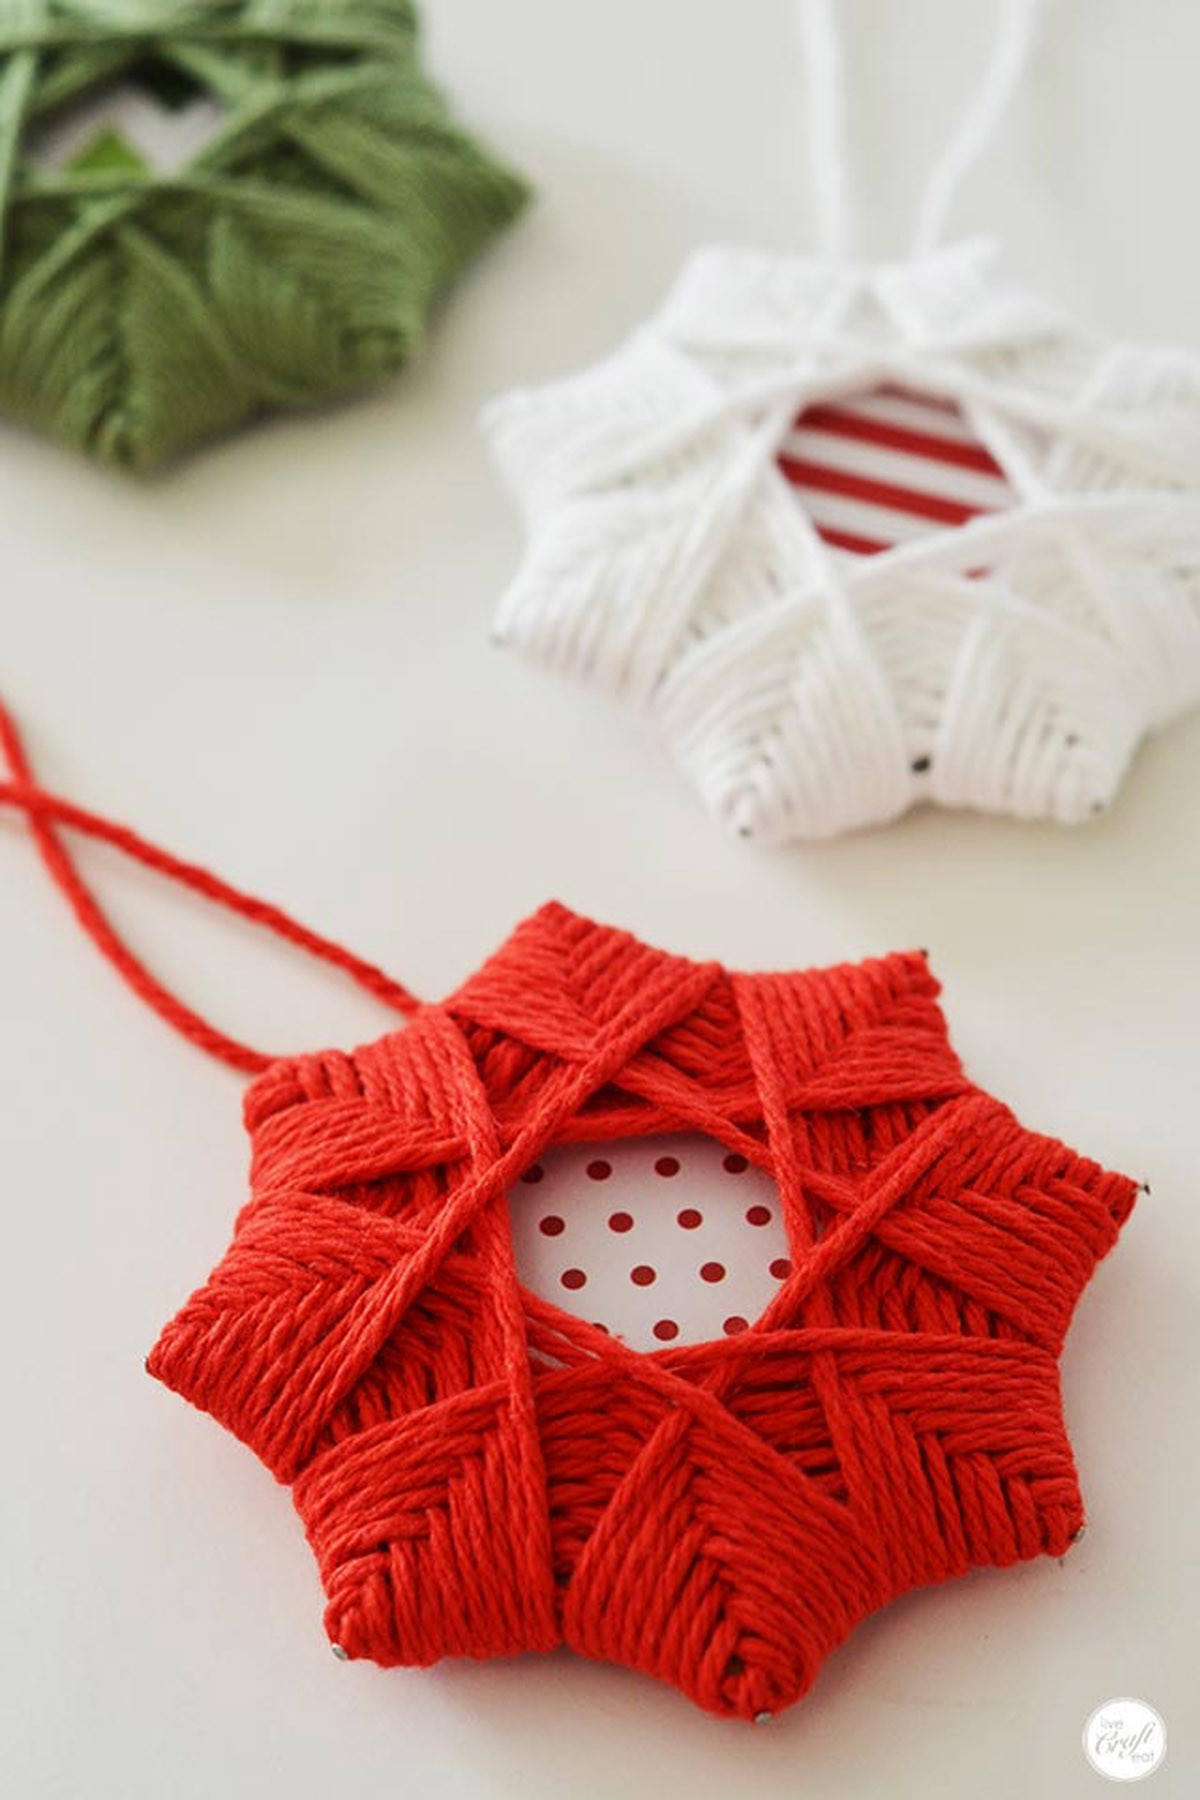 Christmas Tree ornaments to Make Luxury 29 Homemade Diy Christmas ornament Craft Ideas How to Of Amazing 45 Images Christmas Tree ornaments to Make